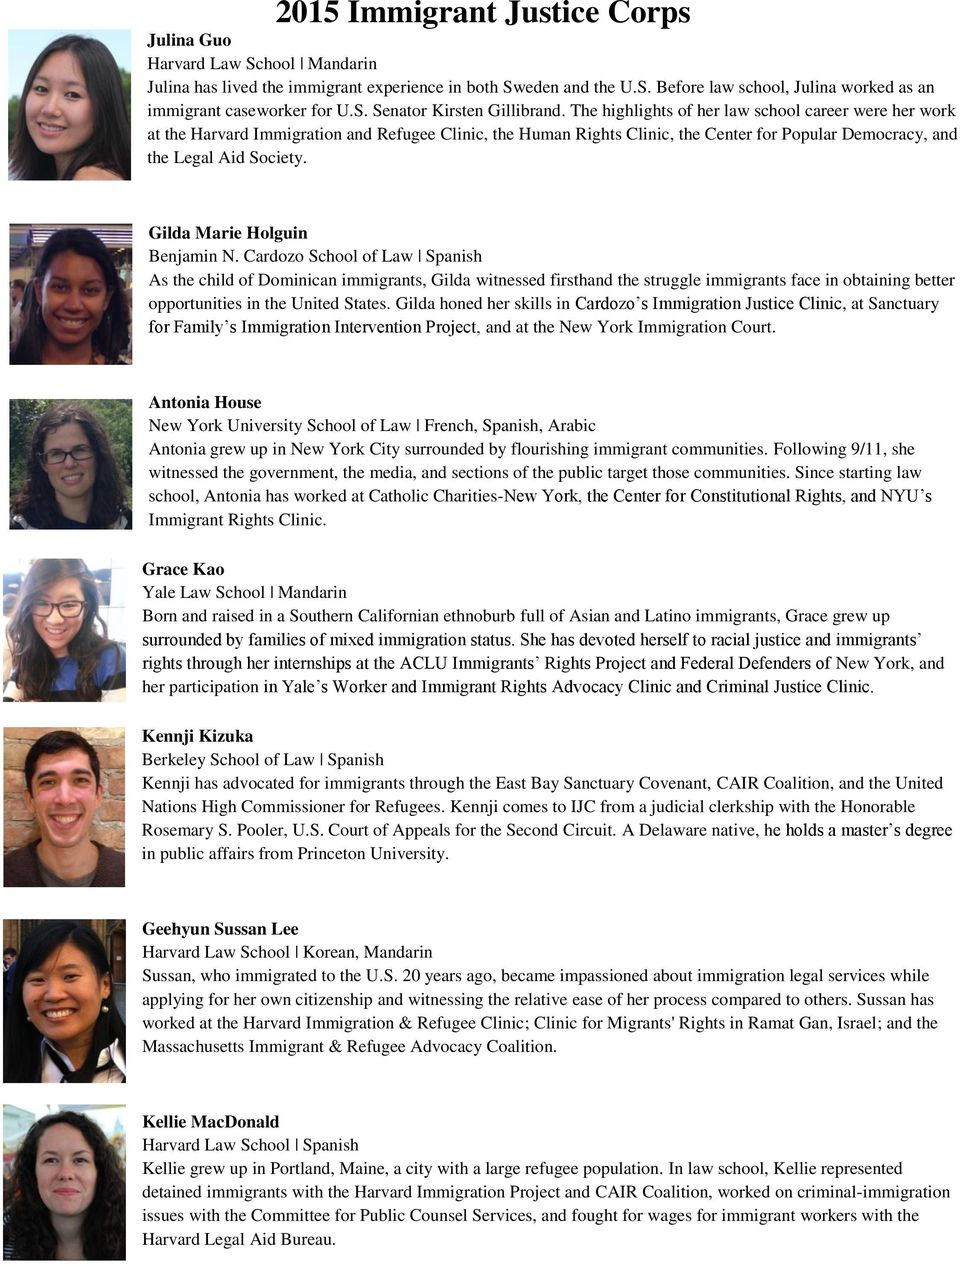 2015 Immigrant Justice Corps Justice Fellows - PDF